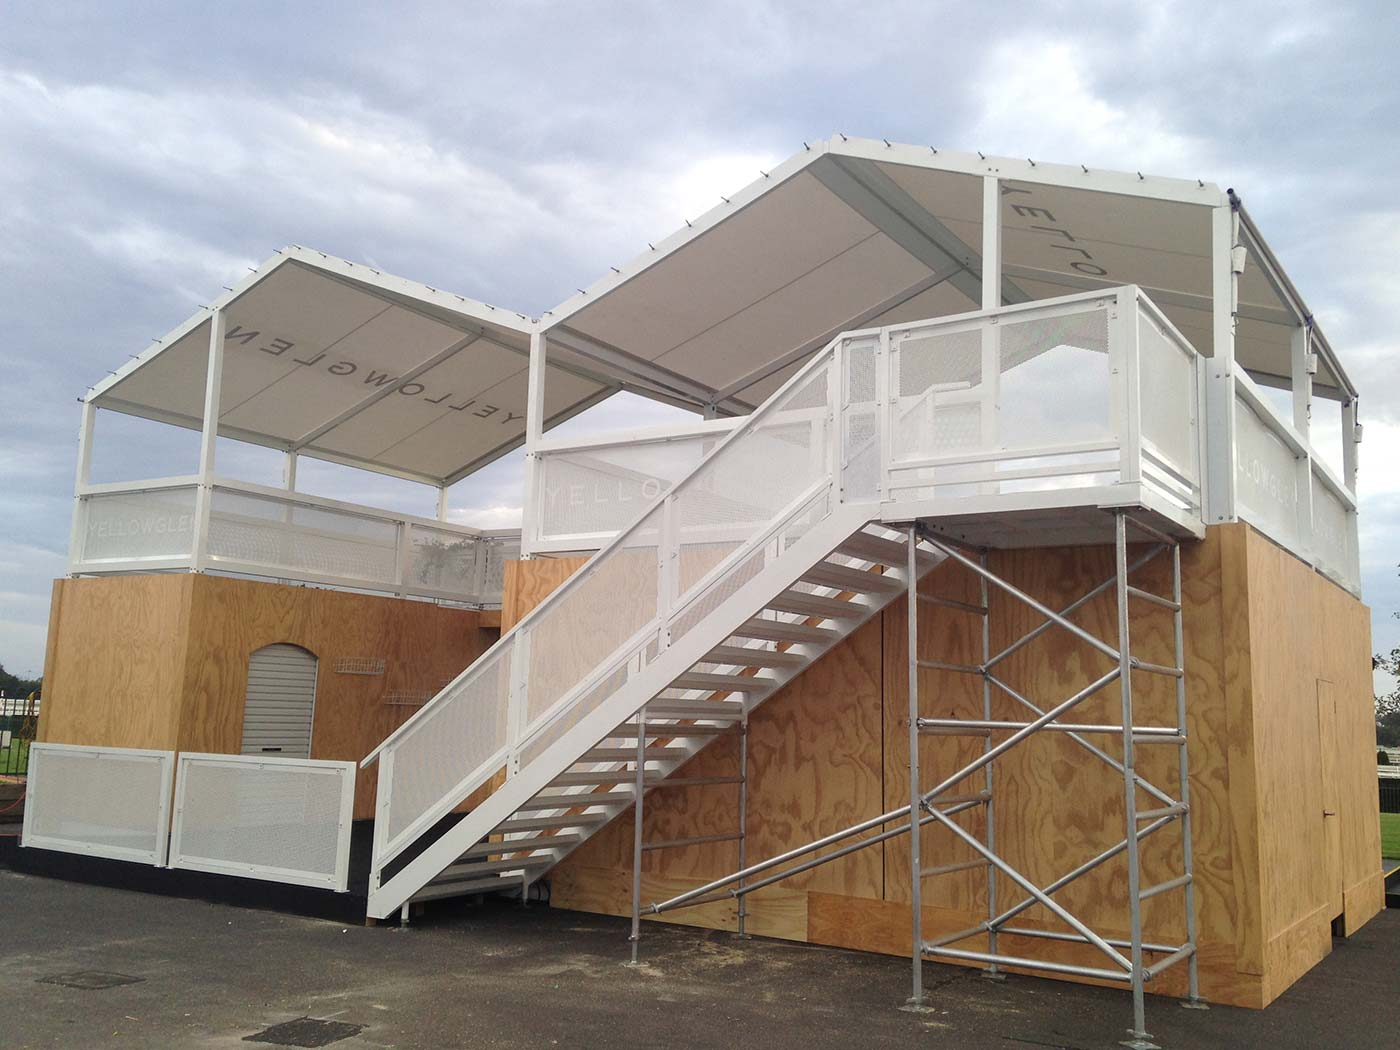 Yellowglen-Terrace-Shipping-Container-Hospitality-Activation-3